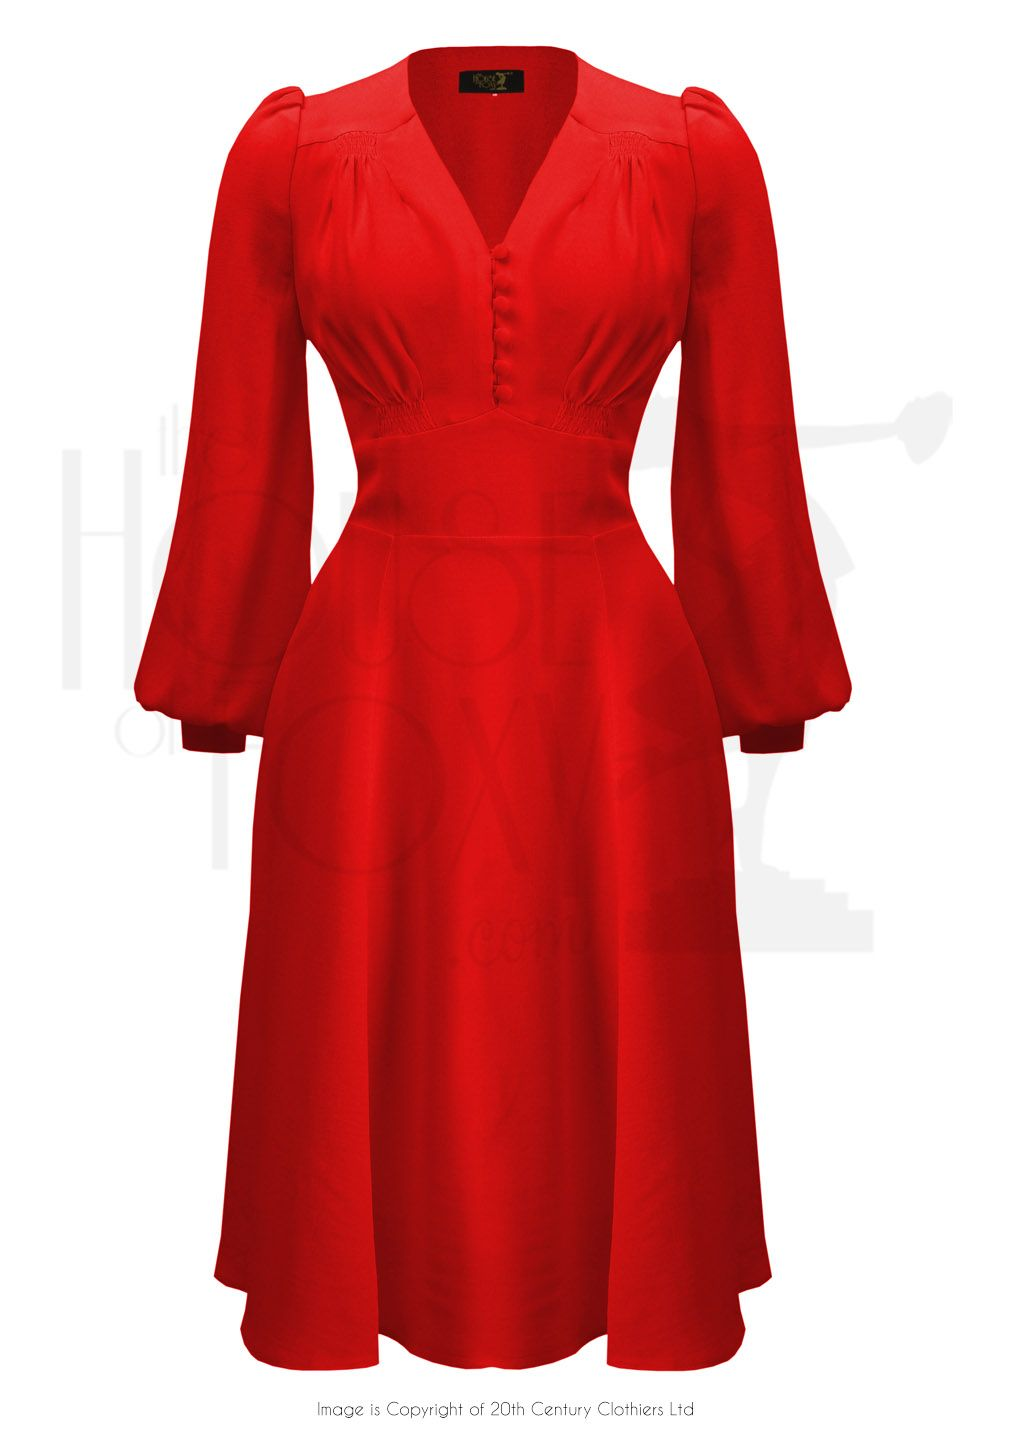 a954061a002 30s Evelyn Dress - Red Crepe in 2019